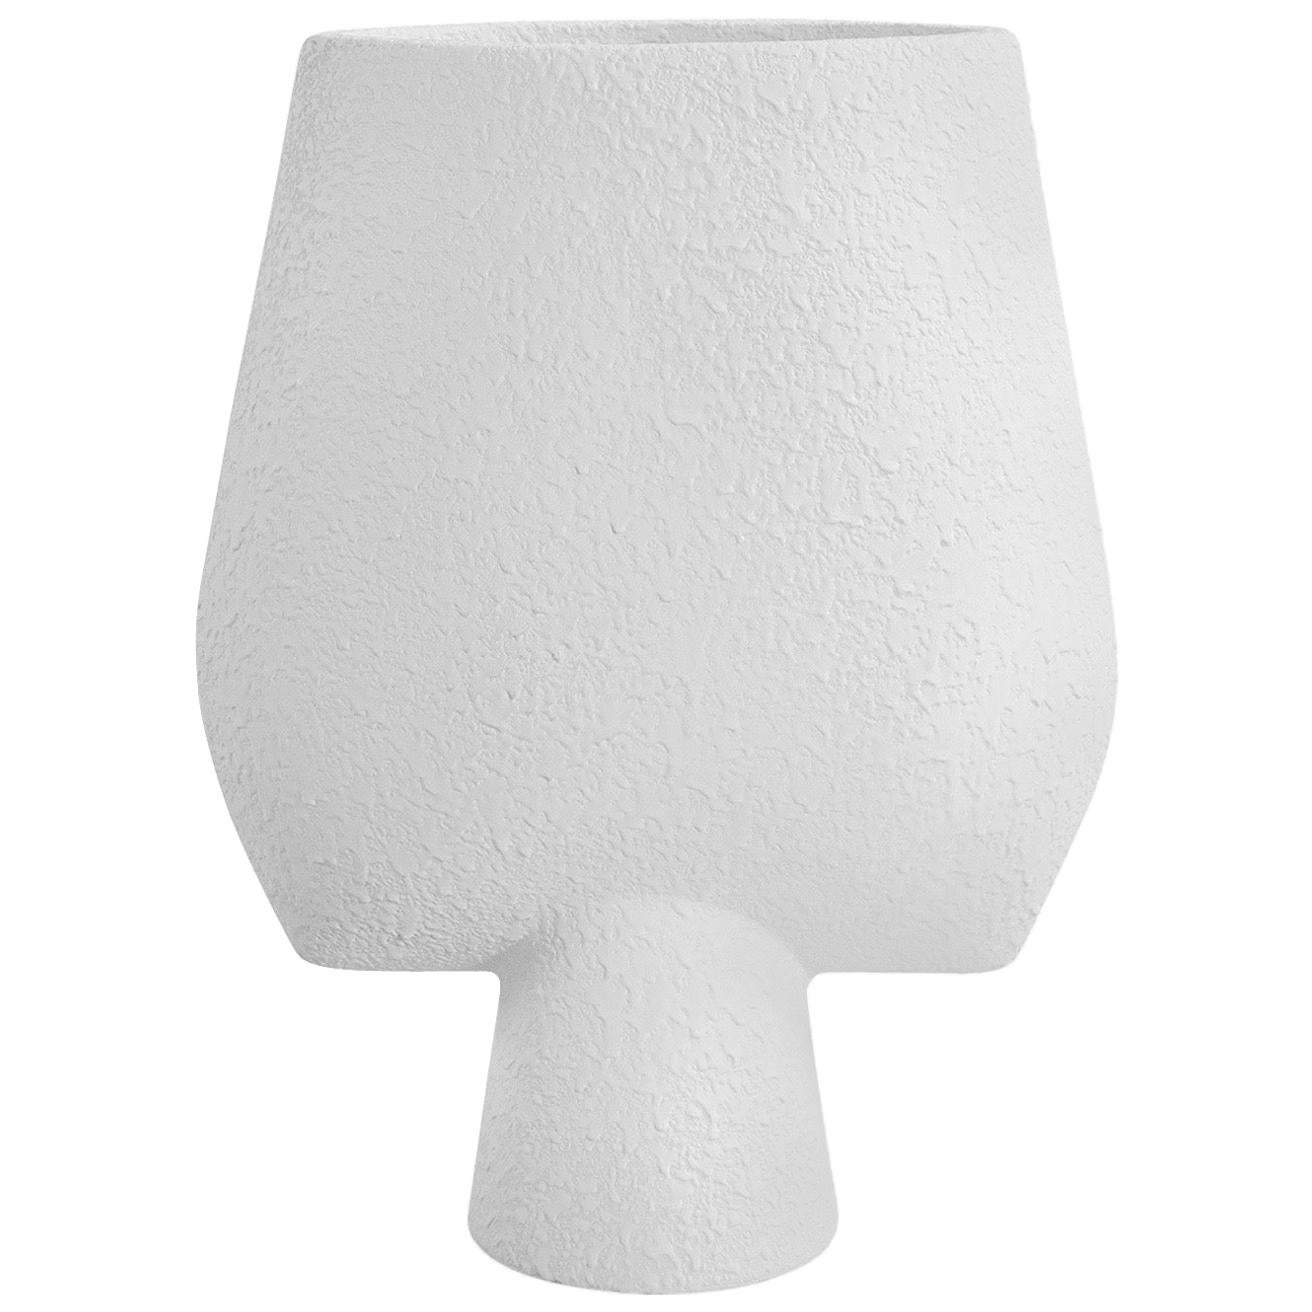 Tall Textured White Arrow Shaped Ceramic Vase, Denmark, Contemporary